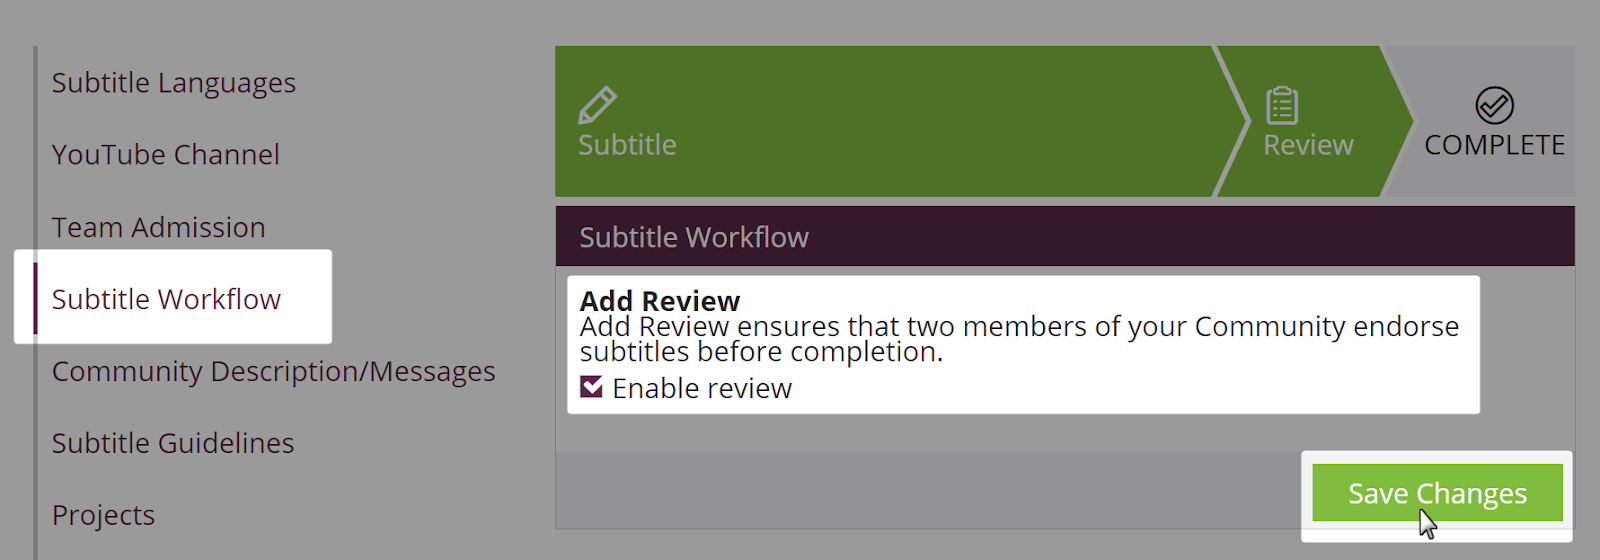 Enable review checkbox and save changes button highlighted on the subtitle workflow settings page on an amara community team